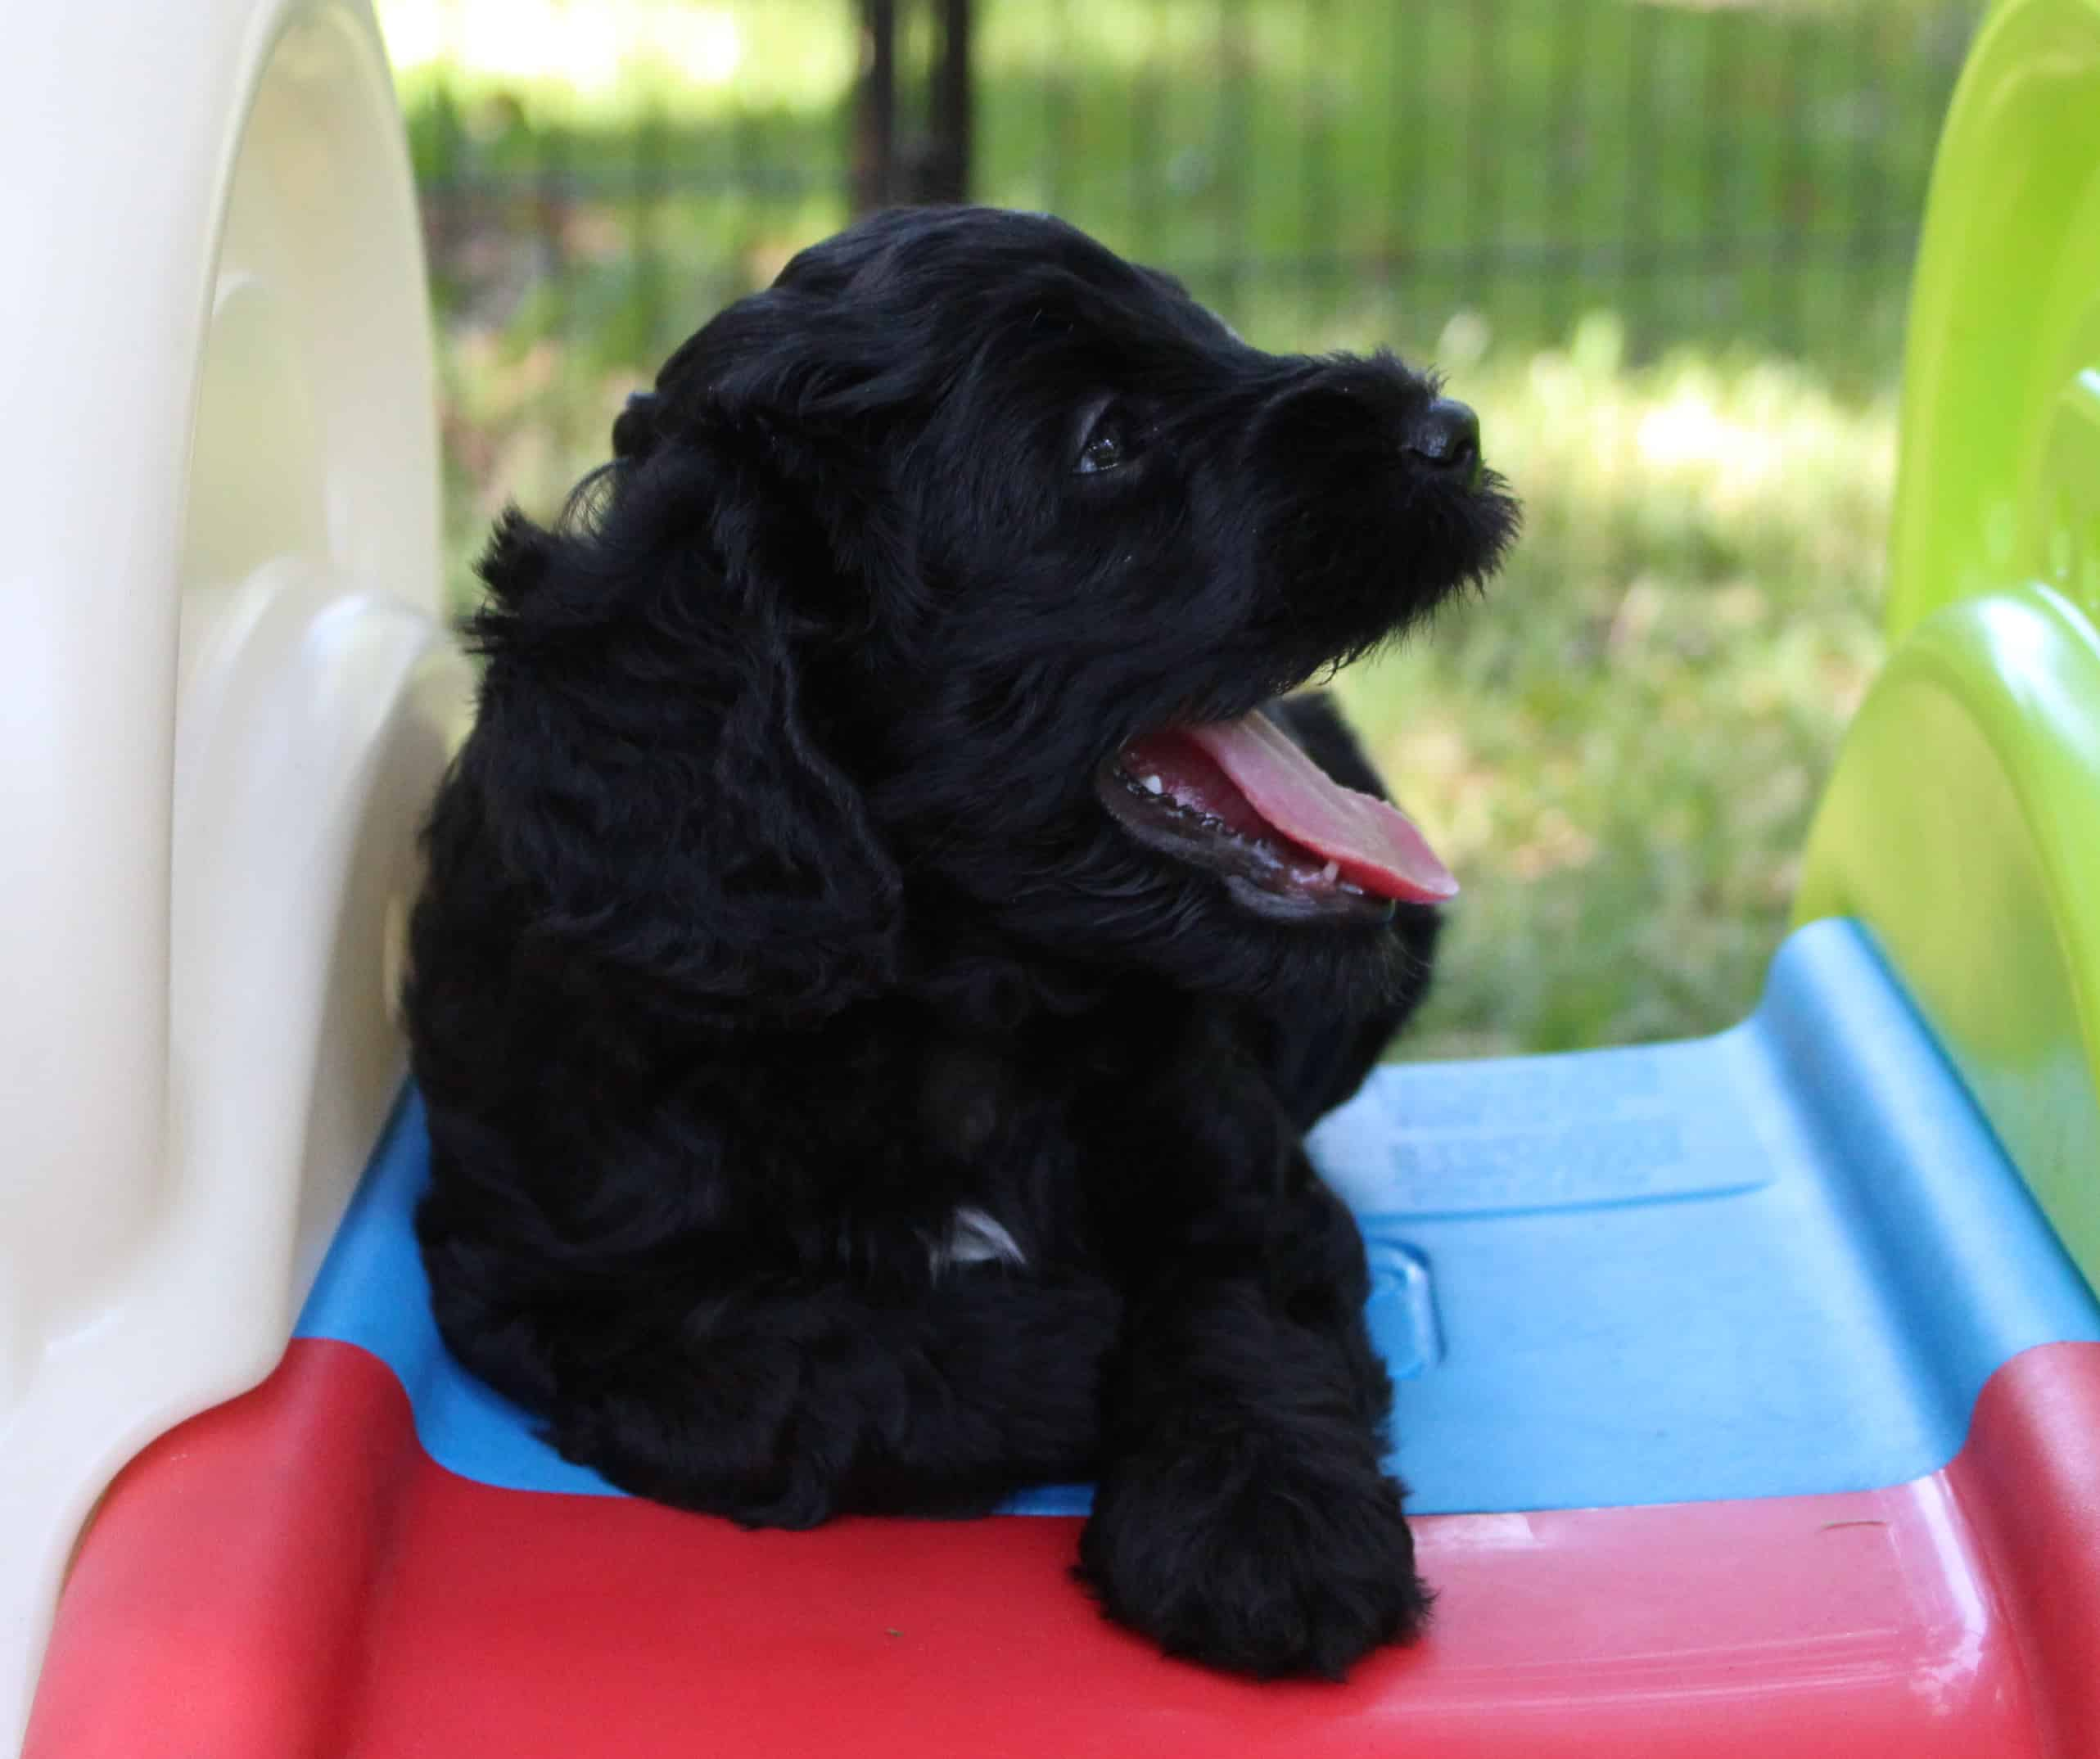 JoaLins' multi generational Australian Labradoodle puppy called Colby from Caiya's Spring 2019 litter